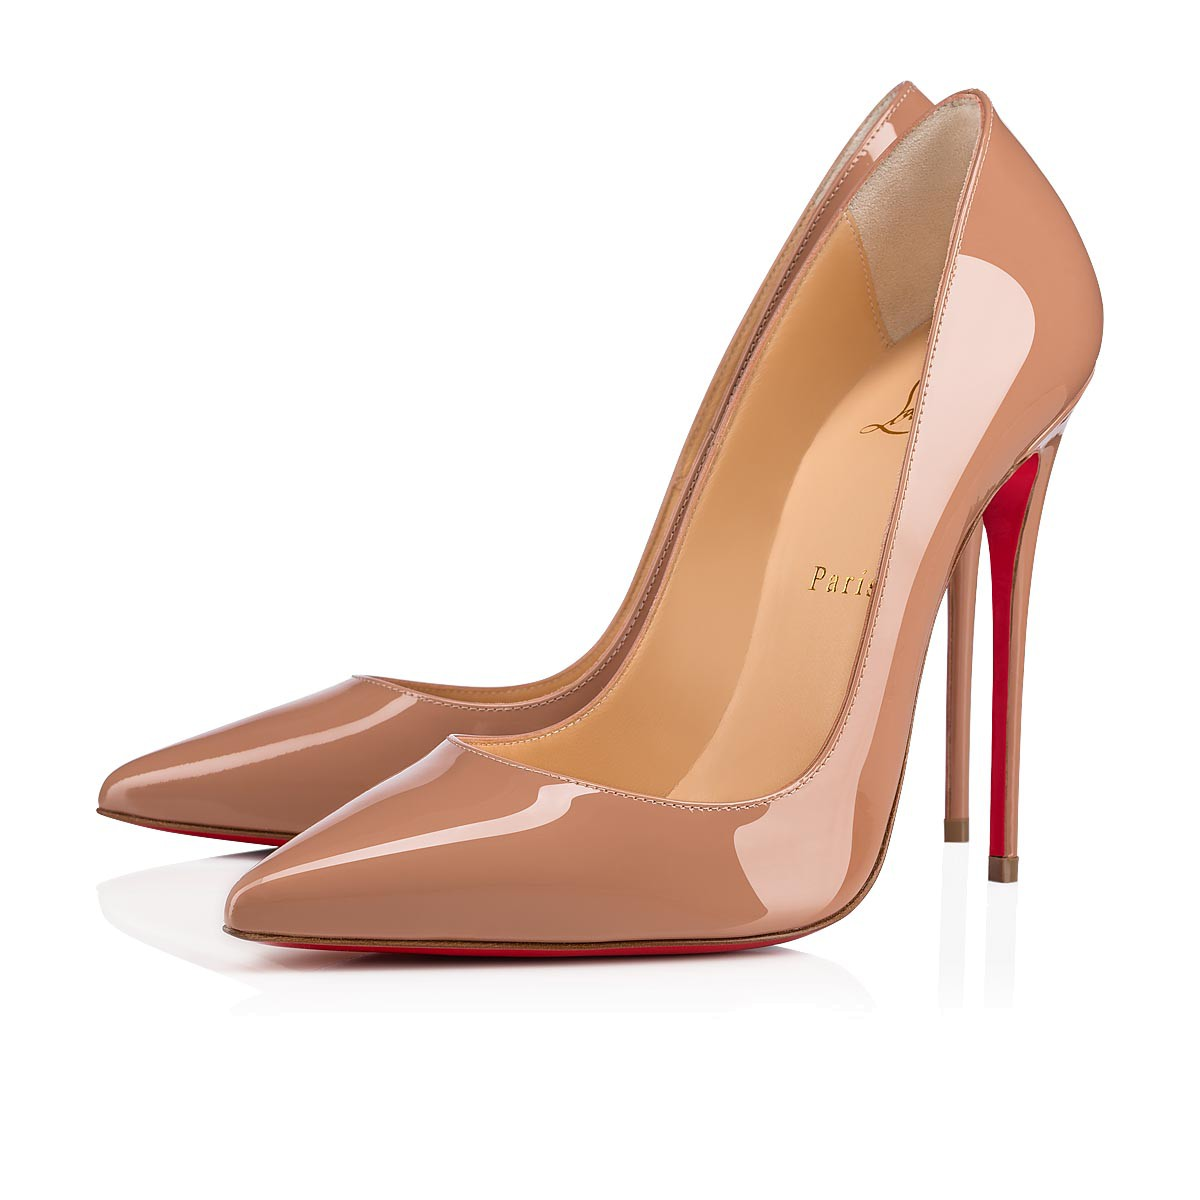 so kate 120 nude patent leather women shoes christian louboutin rh us christianlouboutin com christian louboutin shoes sale christian louboutin shoes sale